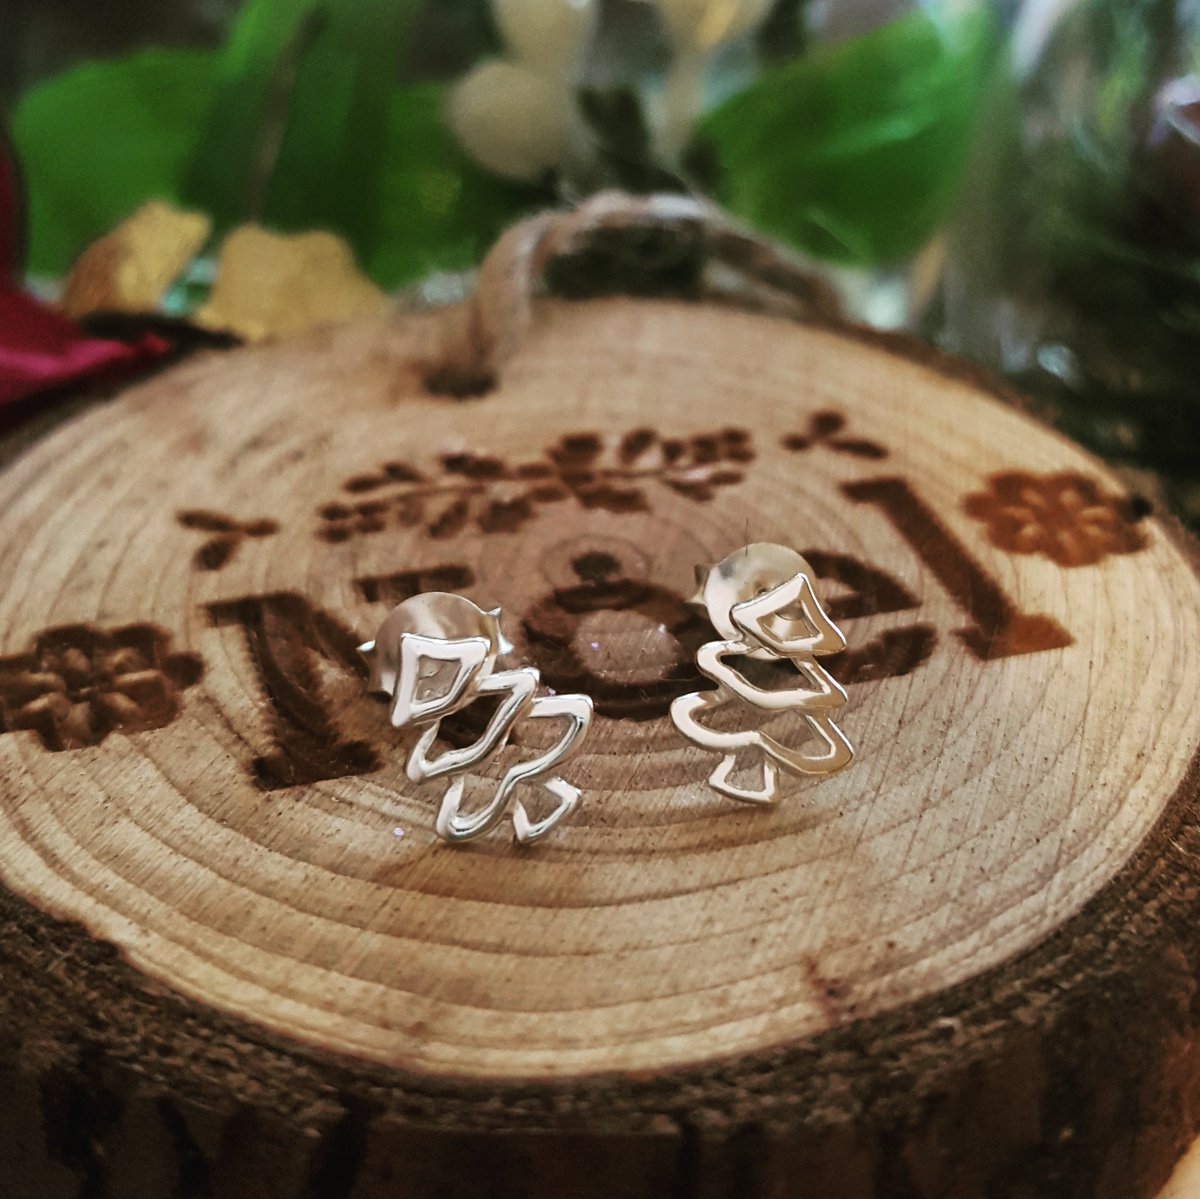 #GIVEAWAY!! FOLLOW US & RT TO ENTER TO #WIN SOME AMAZING SILVER CHRISTMAS TREE STUDS! 1 winner ends sun. Good luck